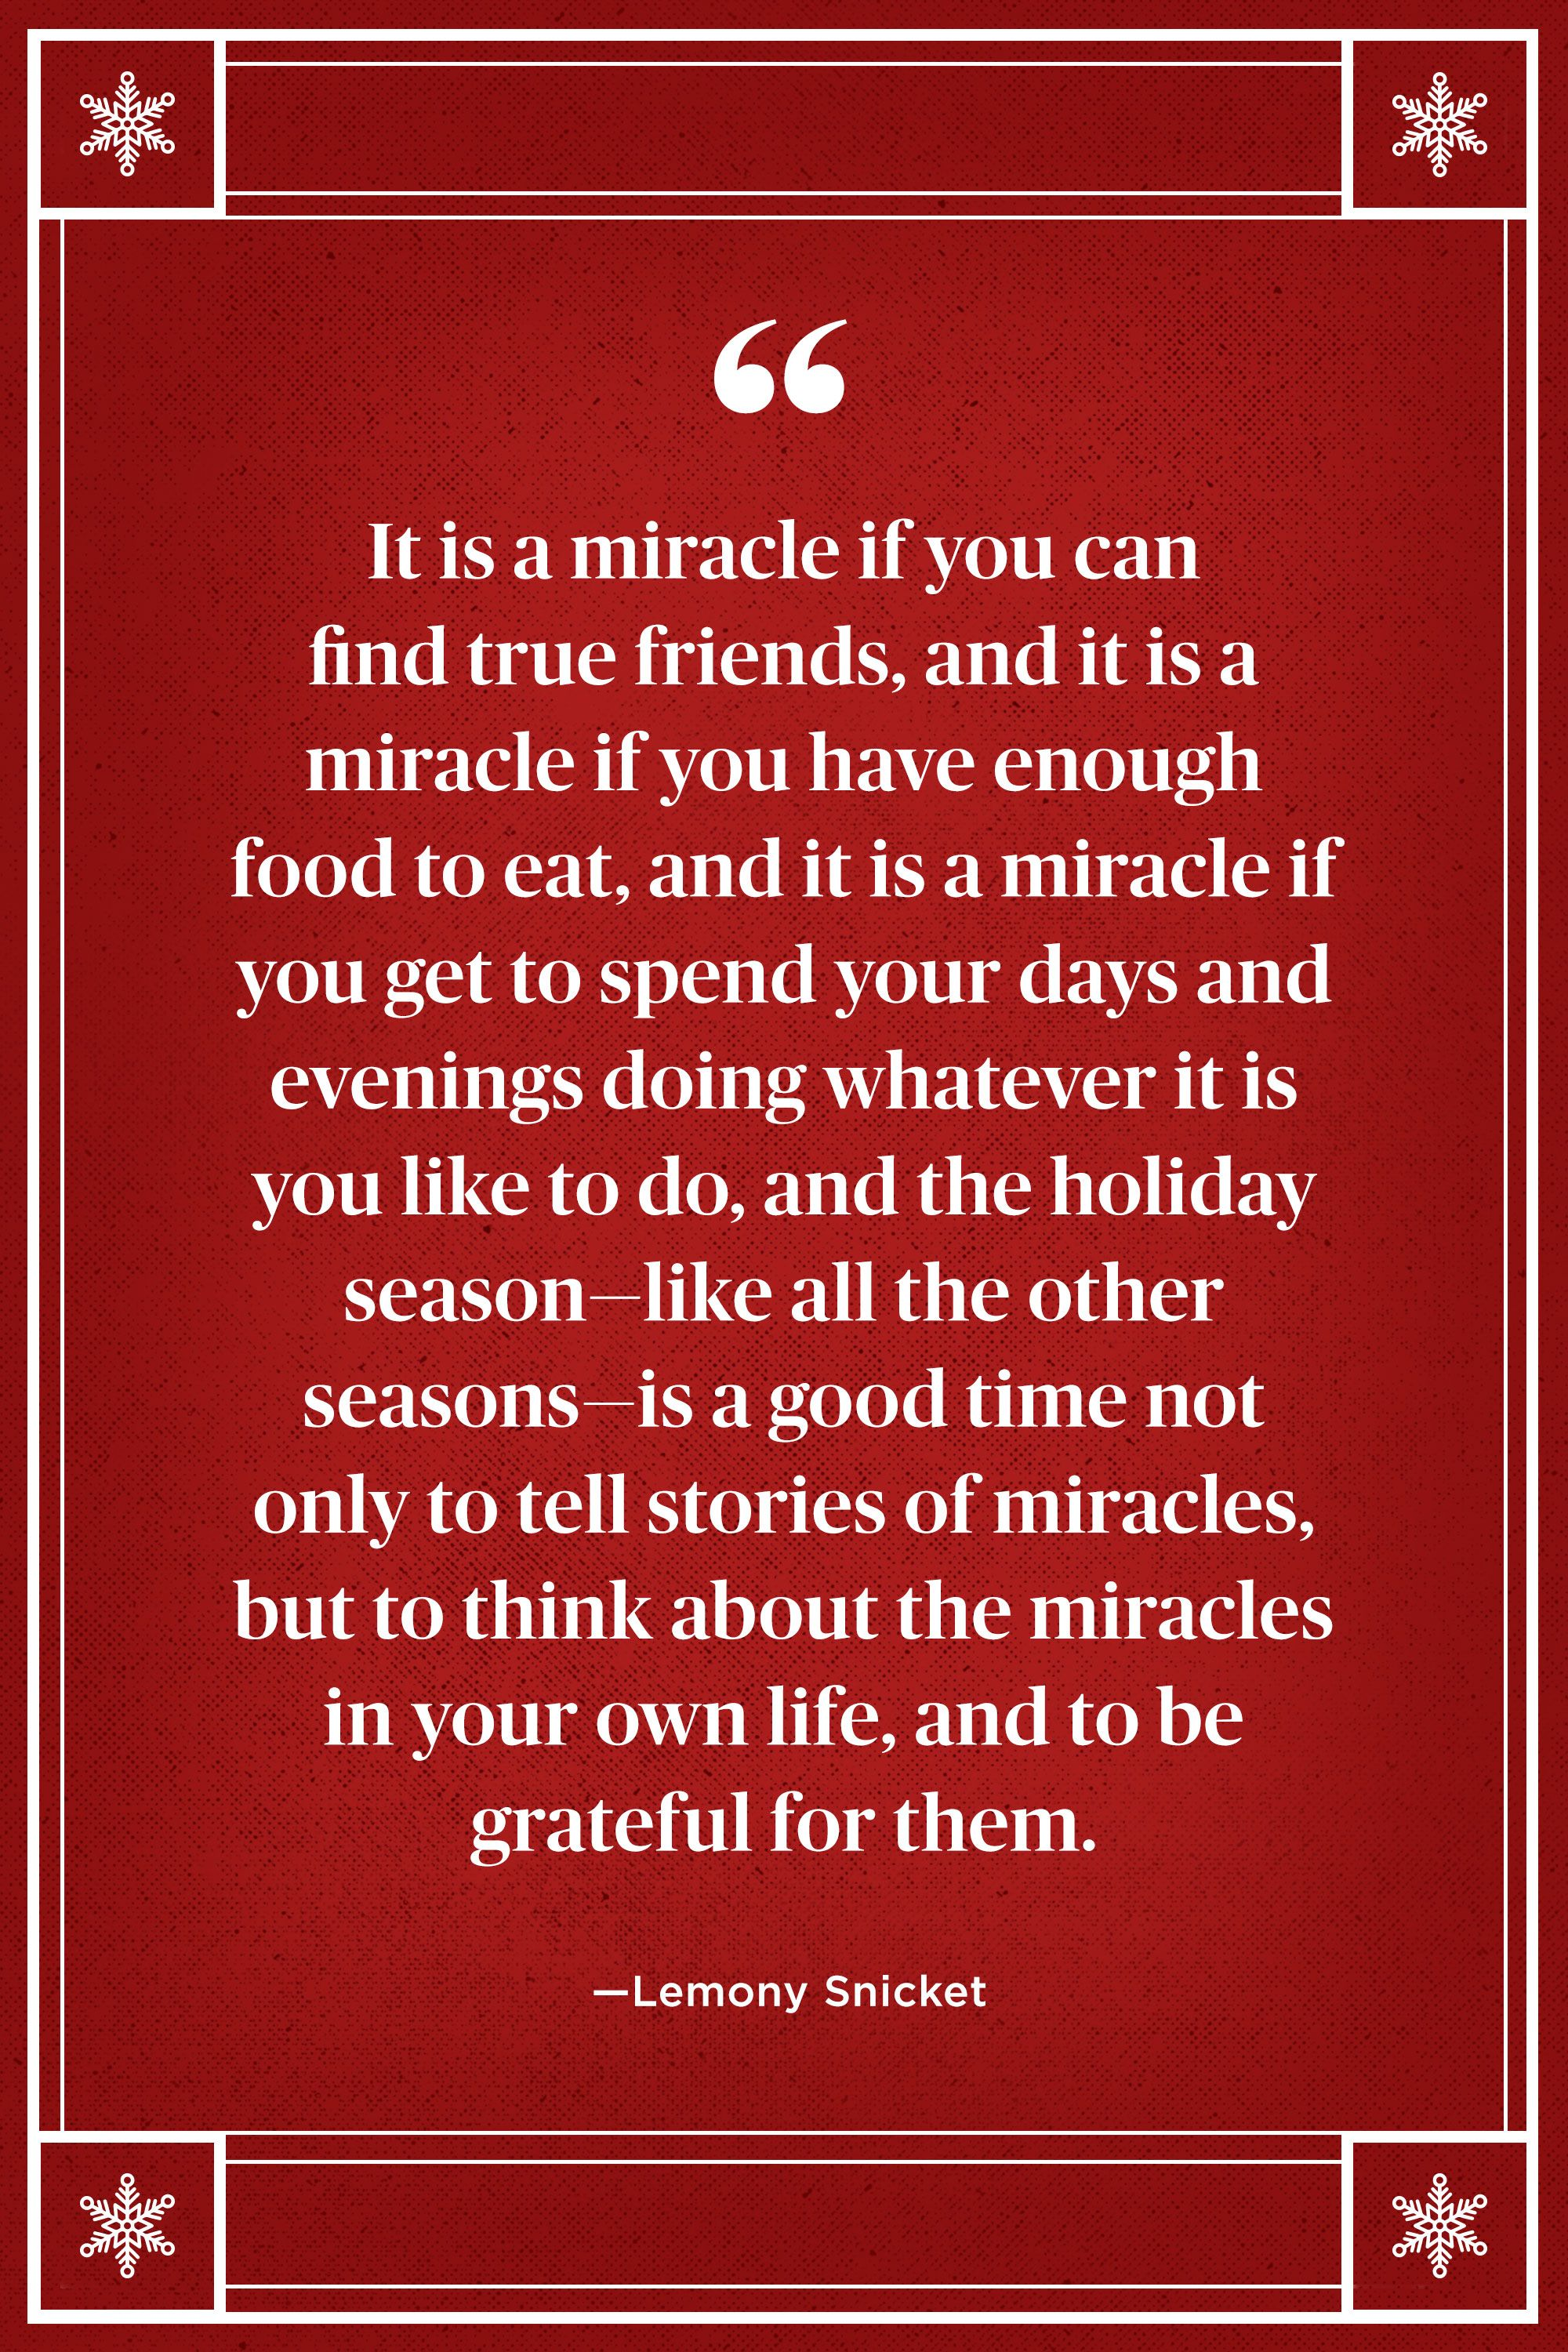 "<p>""It is a miracle if you can find true friends, and it is a miracle if you have enough food to eat, and it is a miracle if you get to spend your days and evenings doing whatever it is you like to do, and the holiday season — like all the other seasons — is a good time not only to tell stories of miracles, but to think about the miracles in your own life, and to be grateful for them."" </p>"